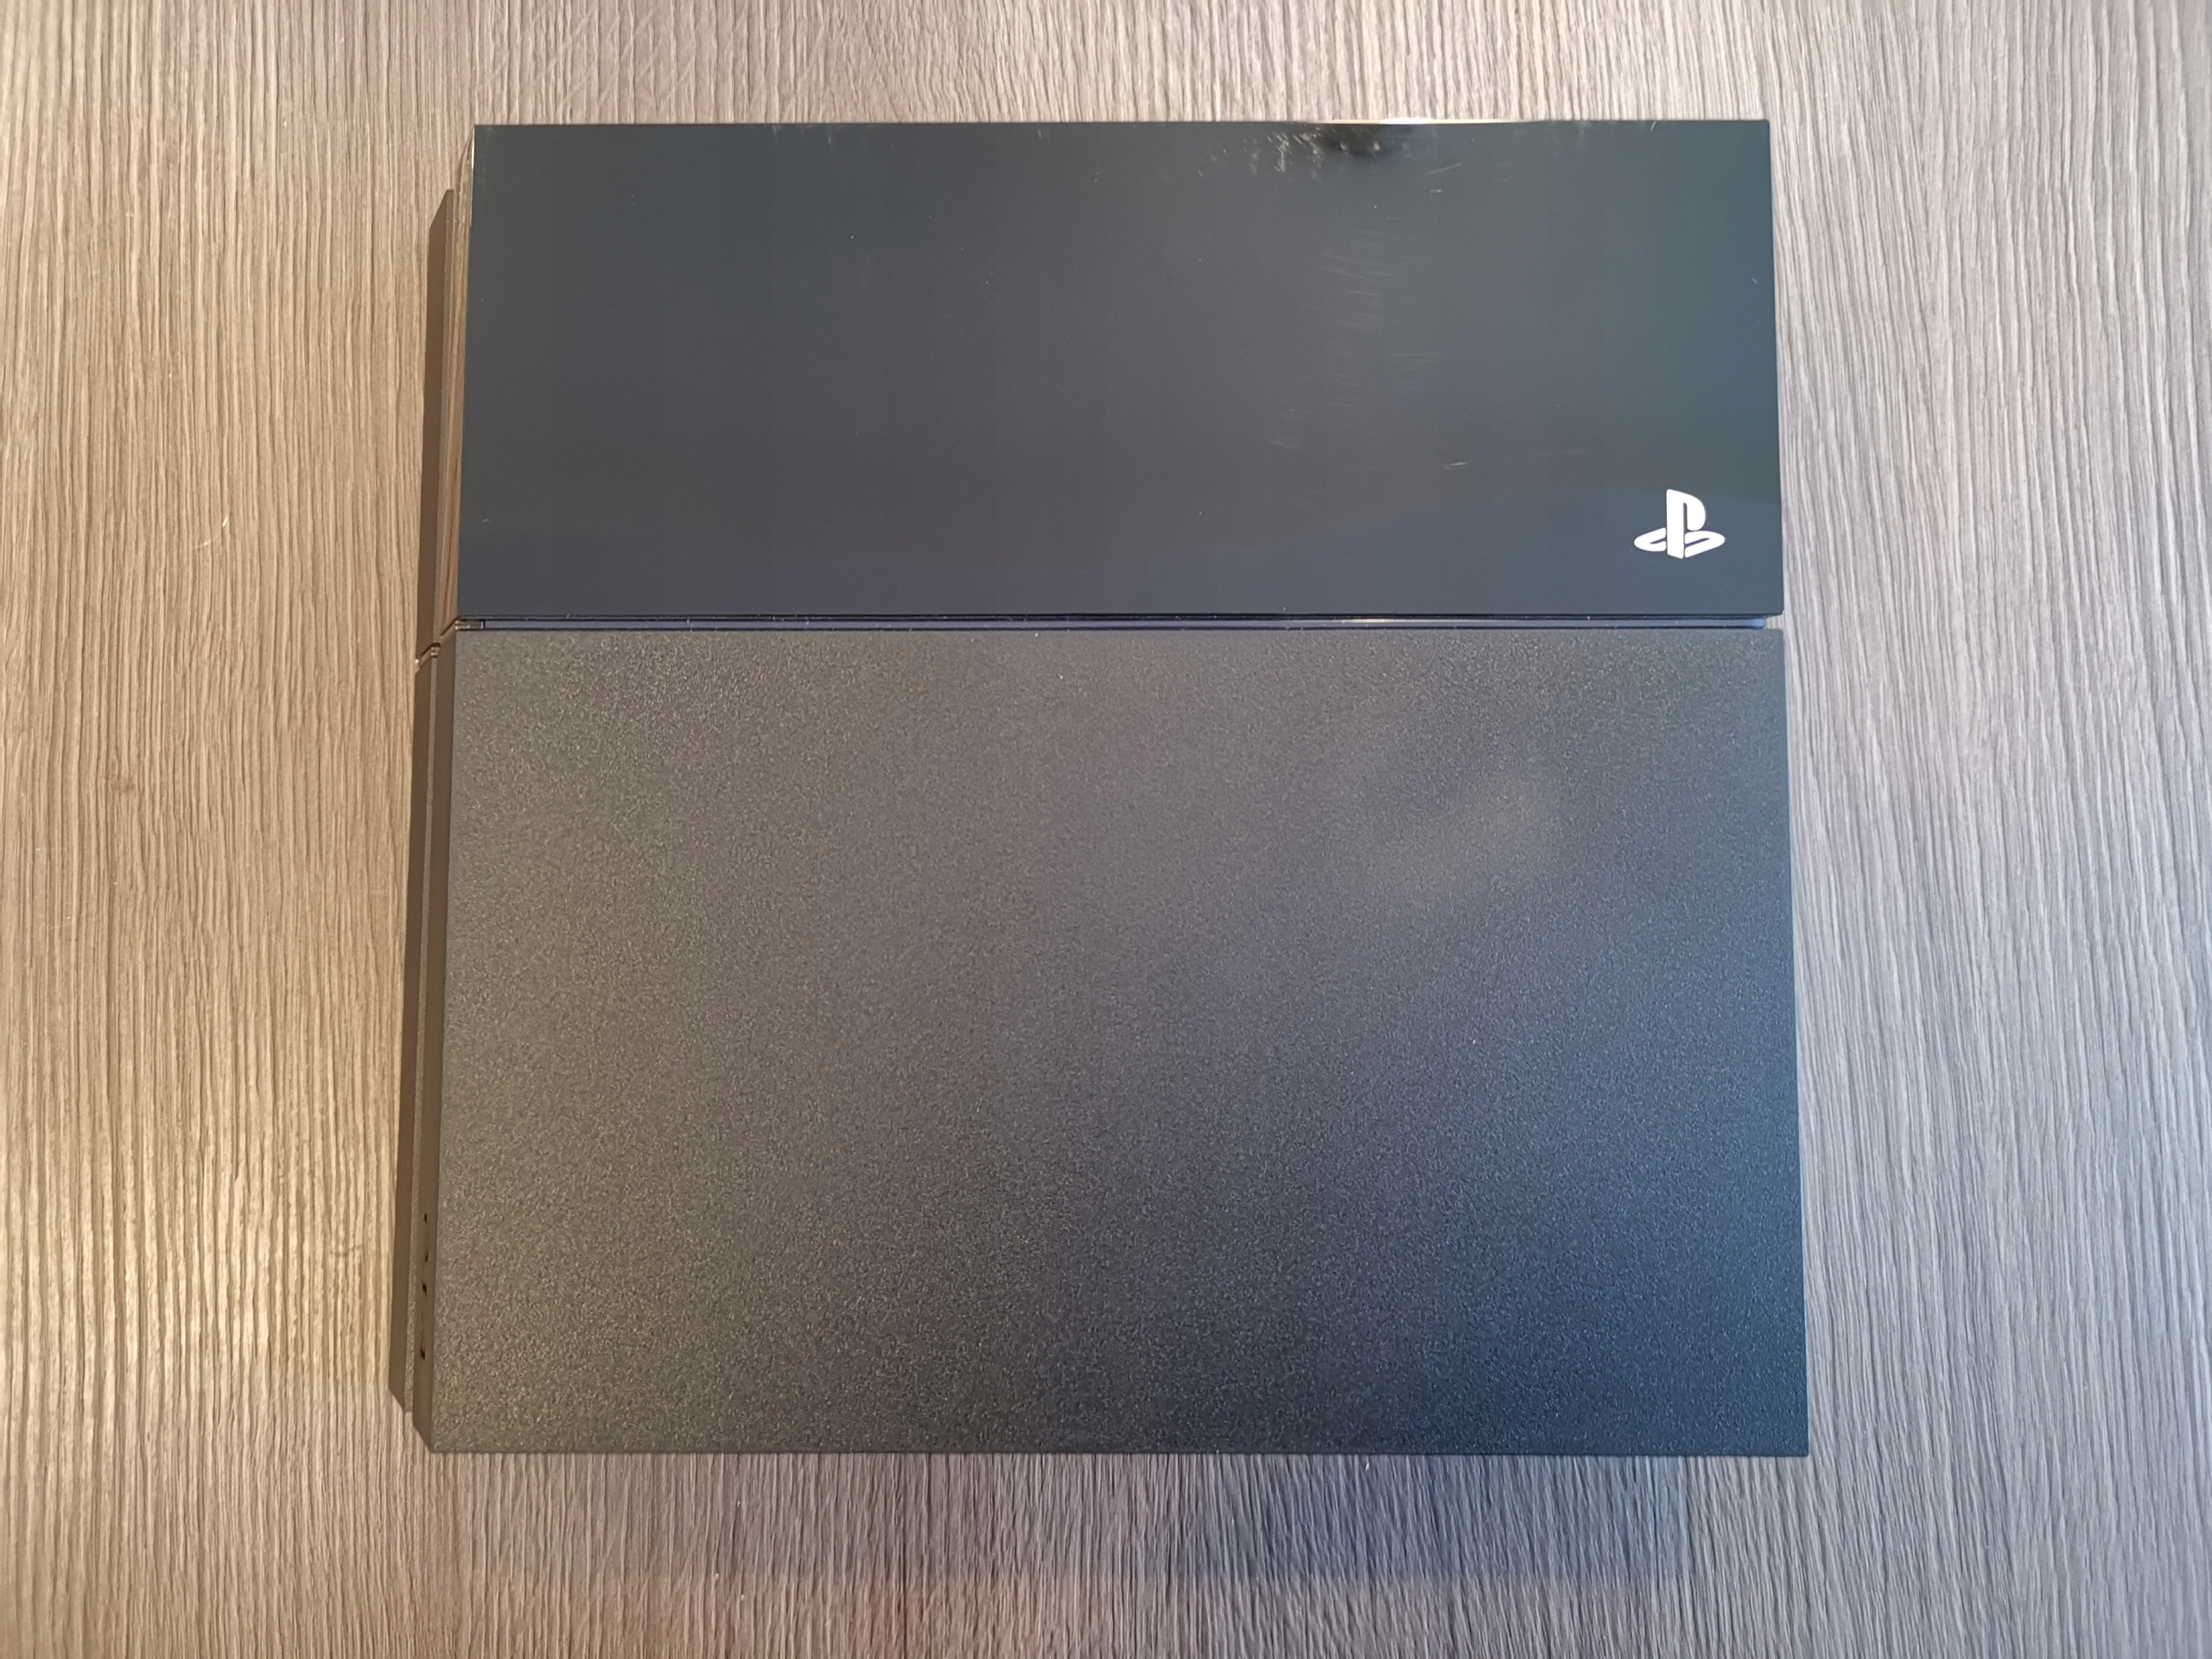 PlayStation4 PS4 CUH-1116A Jet Black 500GB